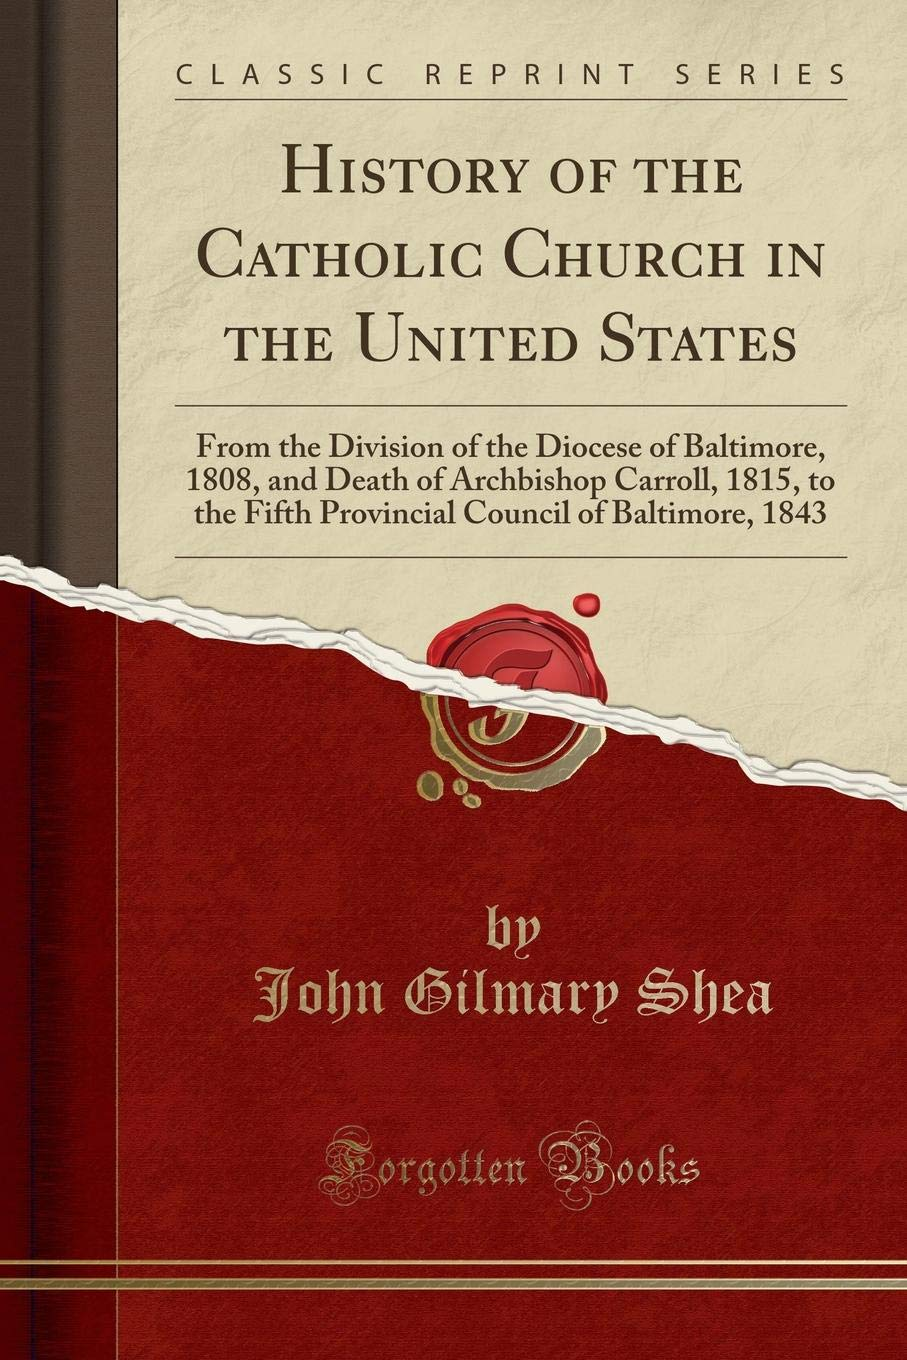 History of the Catholic Church in the United States: From the Division of the Diocese of Baltimore, 1808, and Death of Archbishop Carroll, 1815, to ... Council of Baltimore, 1843 (Classic Reprint) pdf